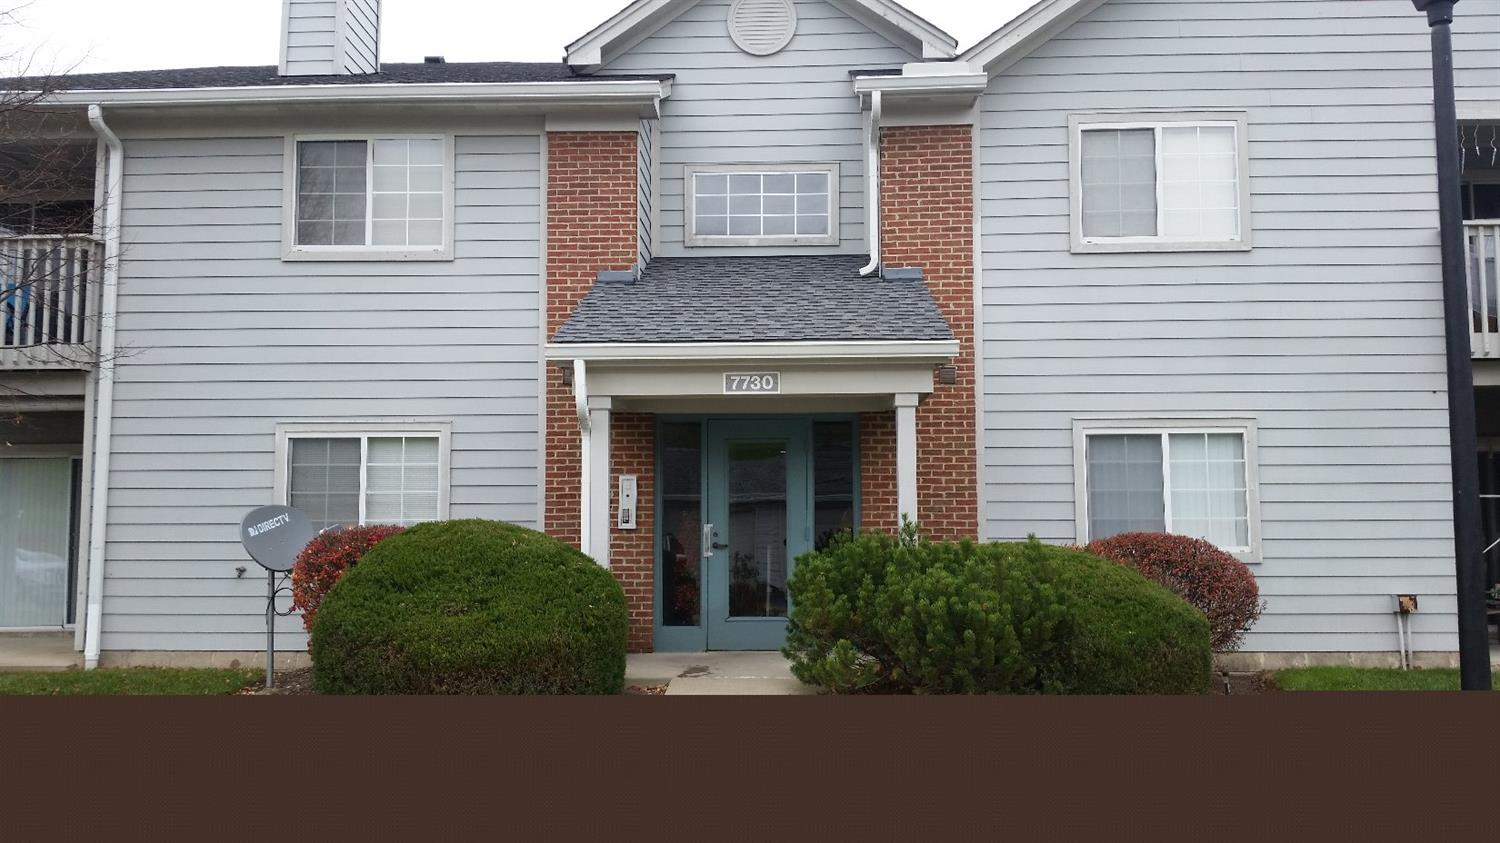 7730 Ottawa Ln 150 West Chester West Oh 45069 Listing